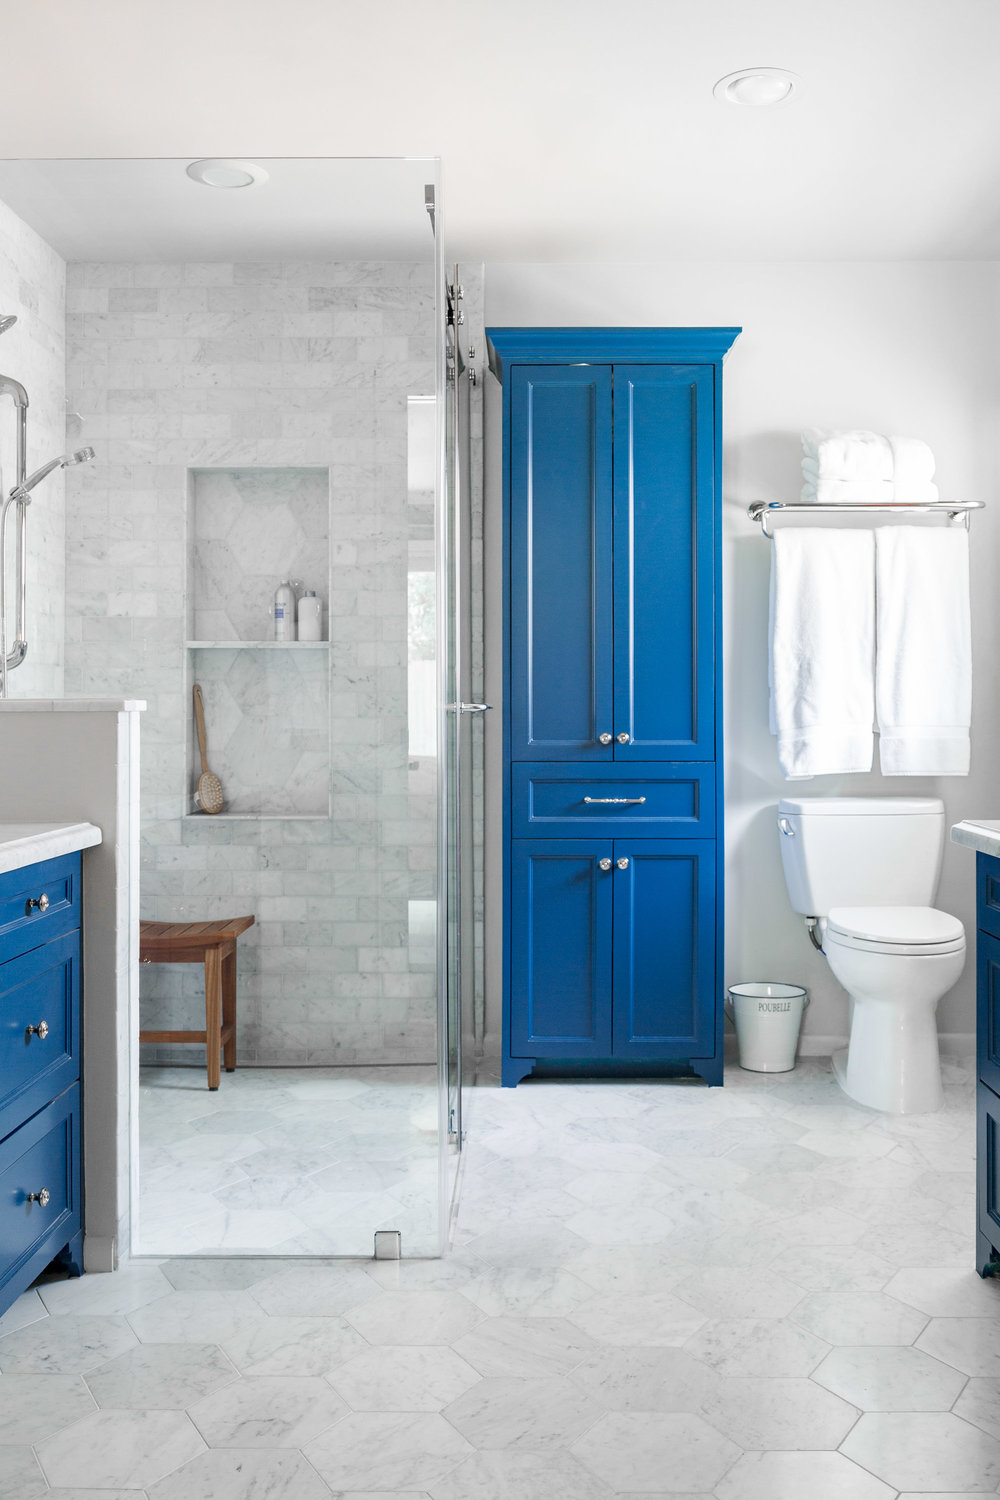 Bathroom remodel with white Carrara marble and blue cabinets Designer: Carla Aston